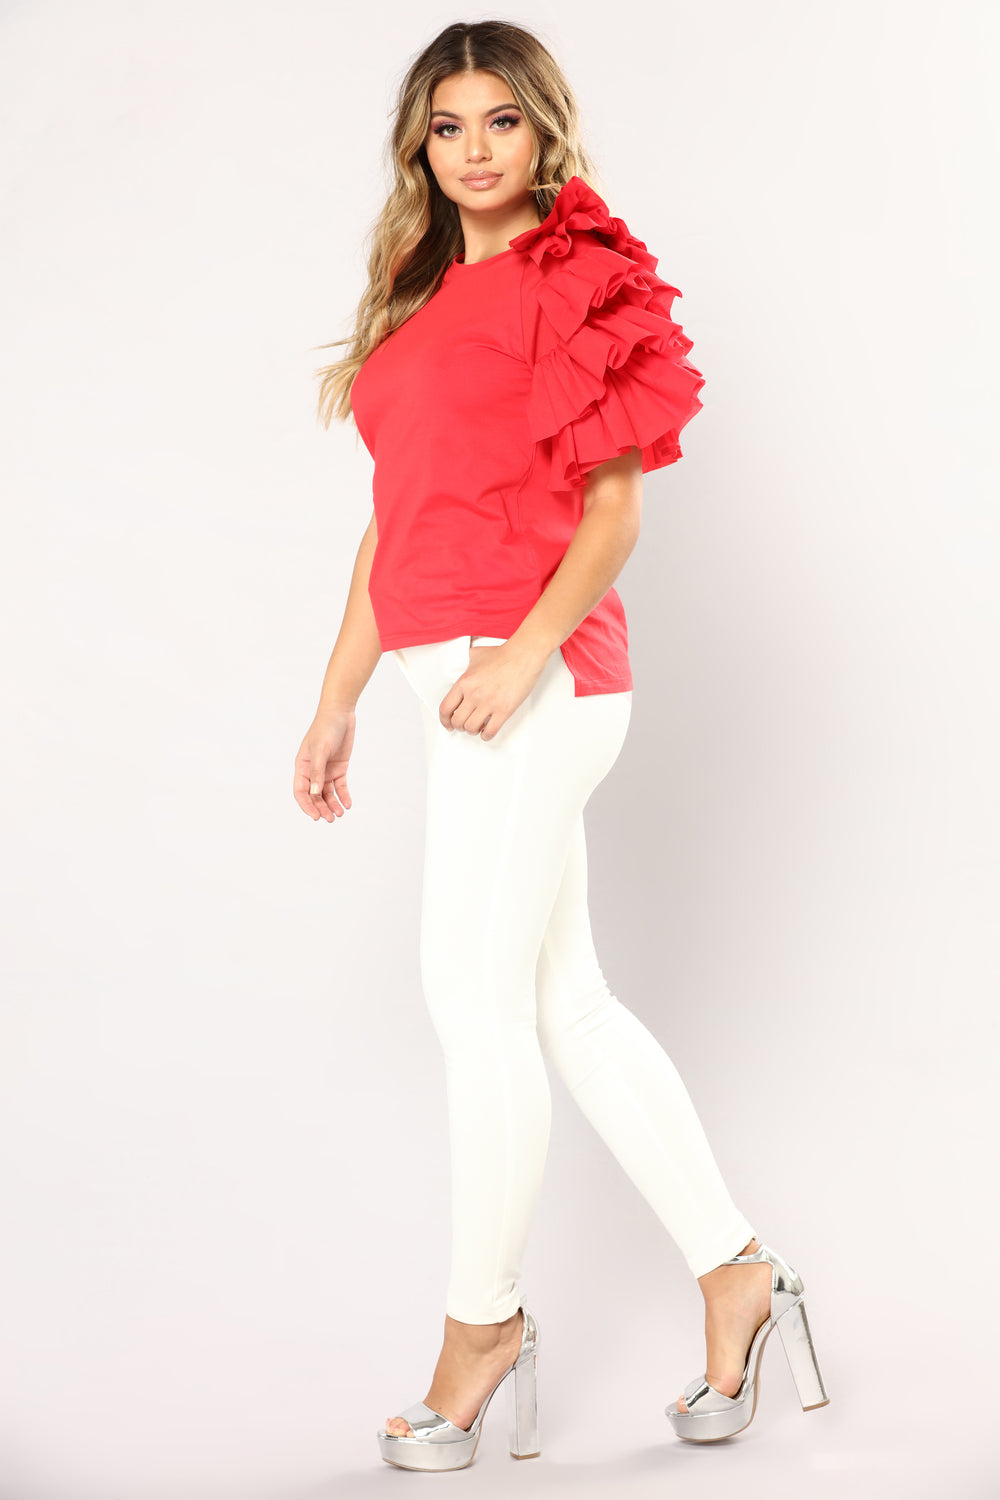 Myrna Knit Top - Red